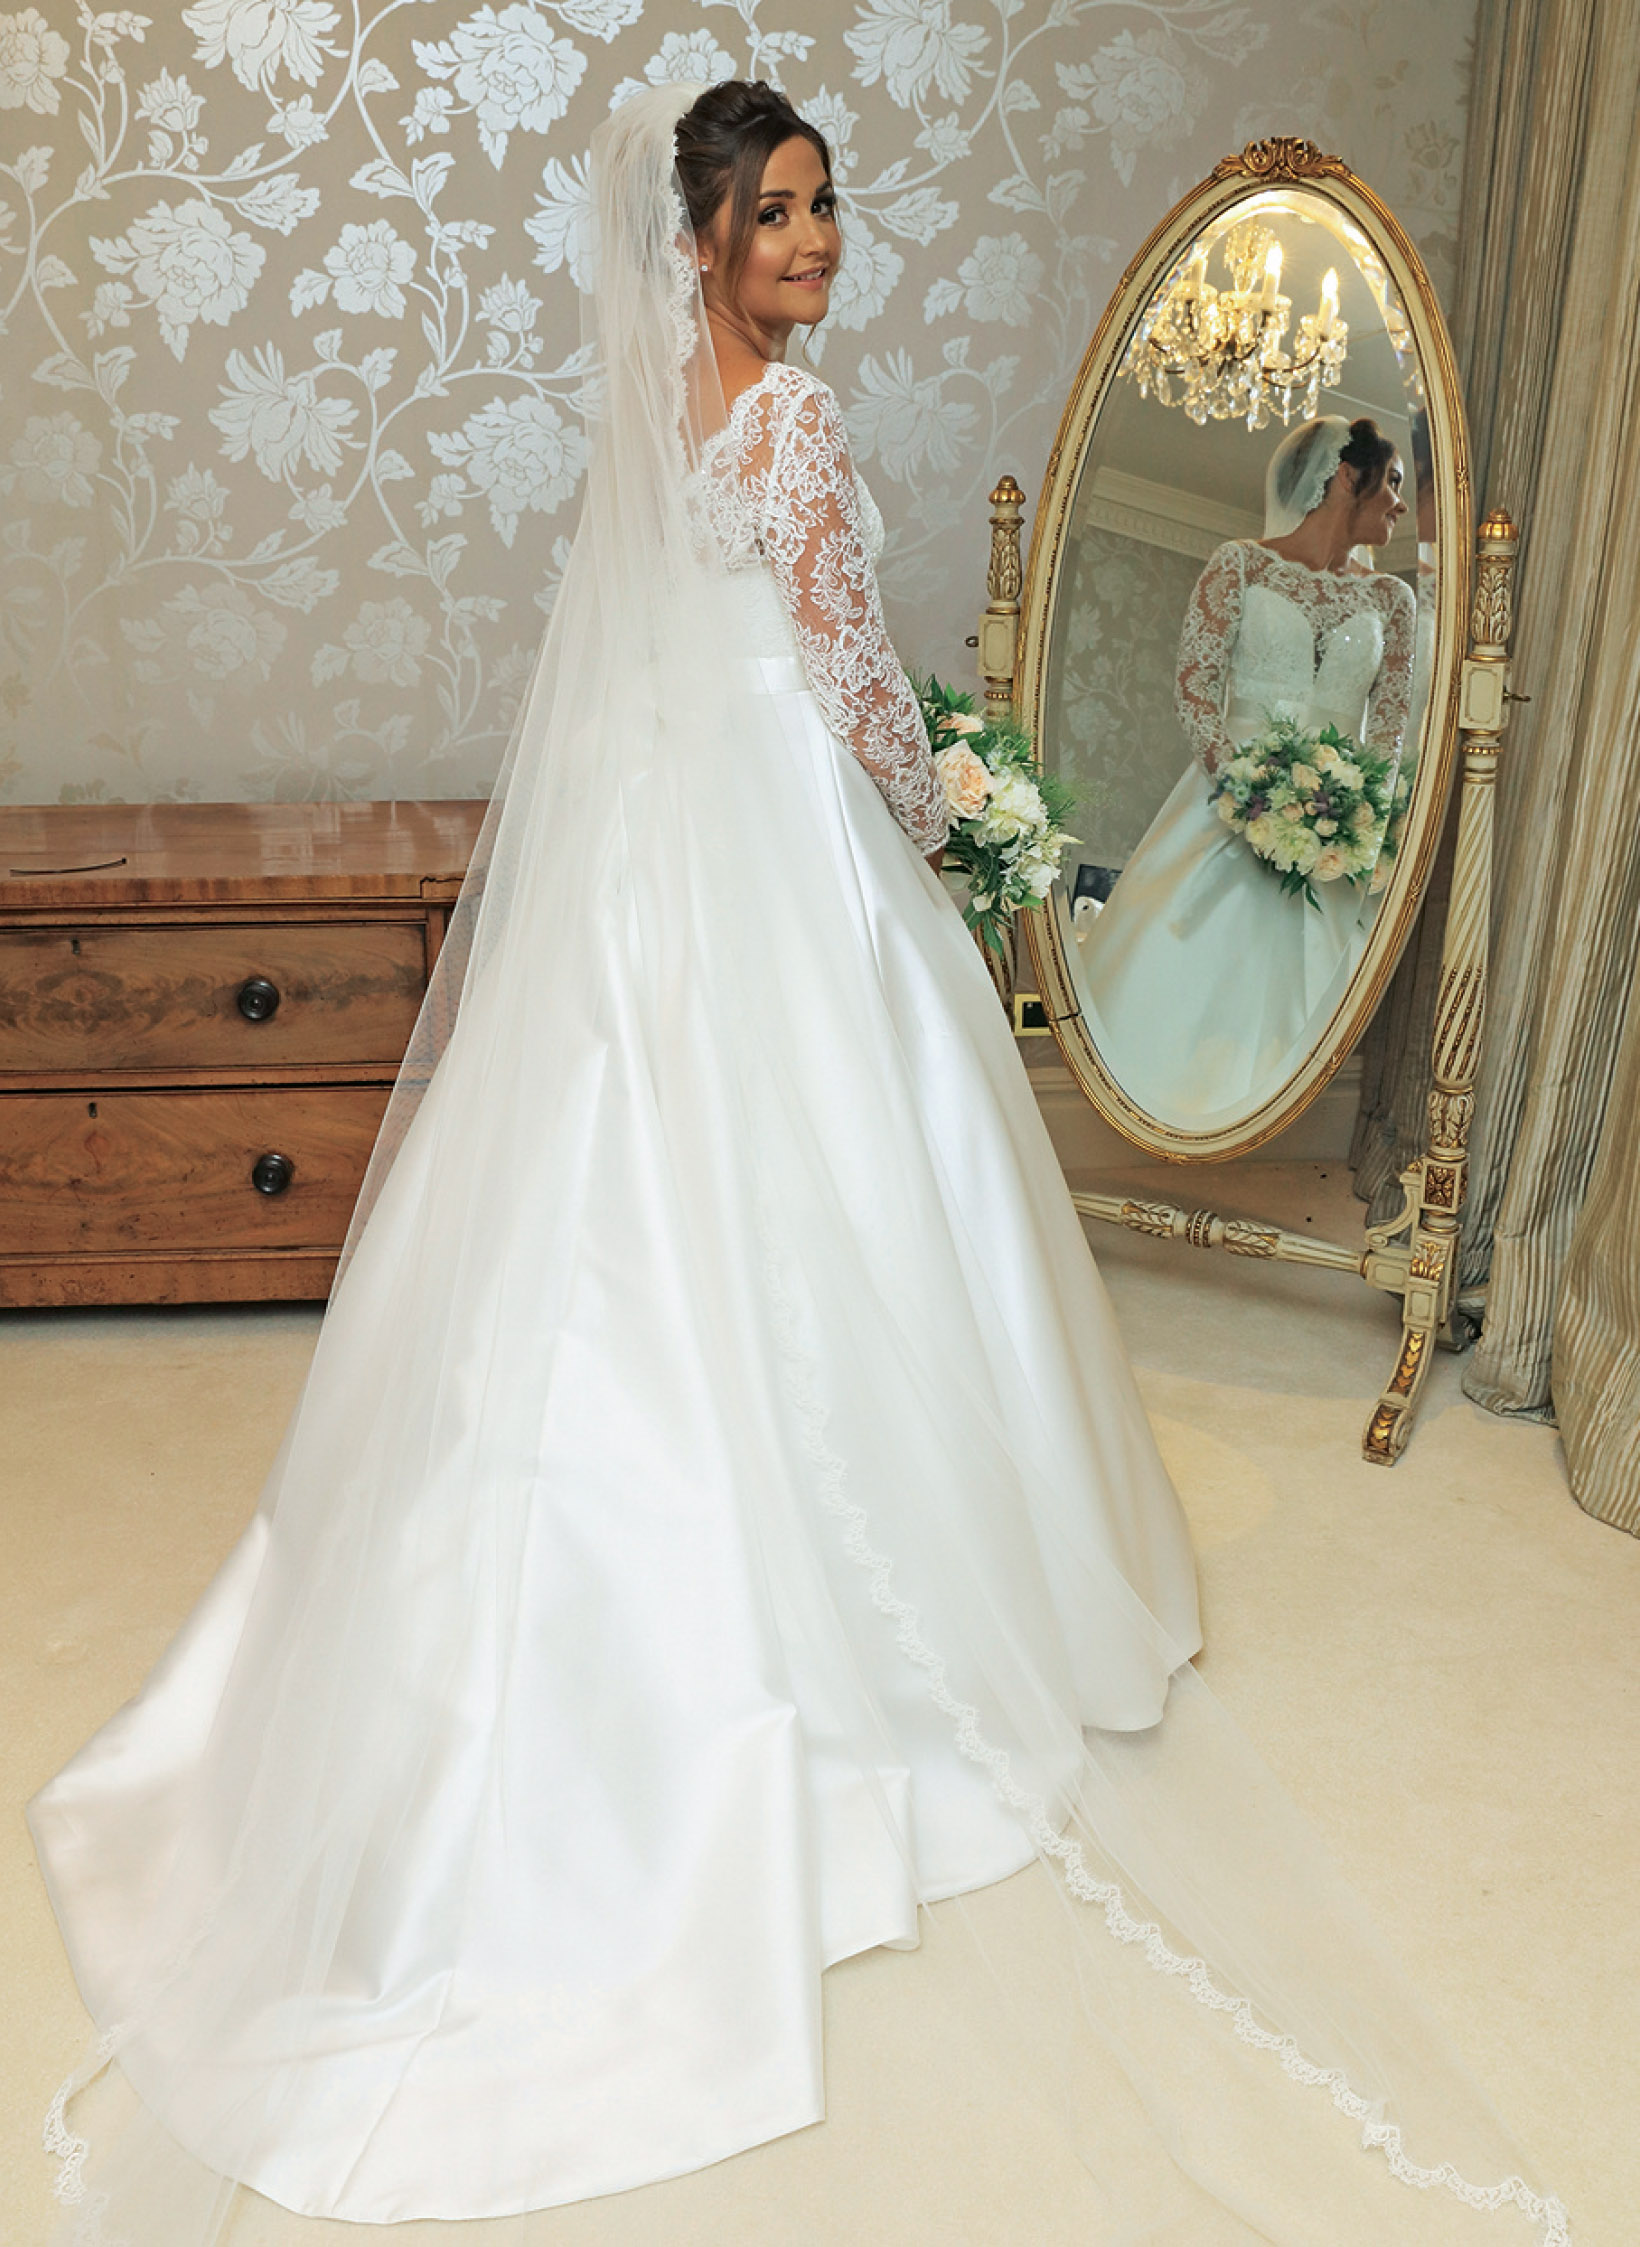 tv-couples-married-in-real-life-jaqueline-joss-dan-osborne-wedding-dresses-by-designer-suzanneneville11